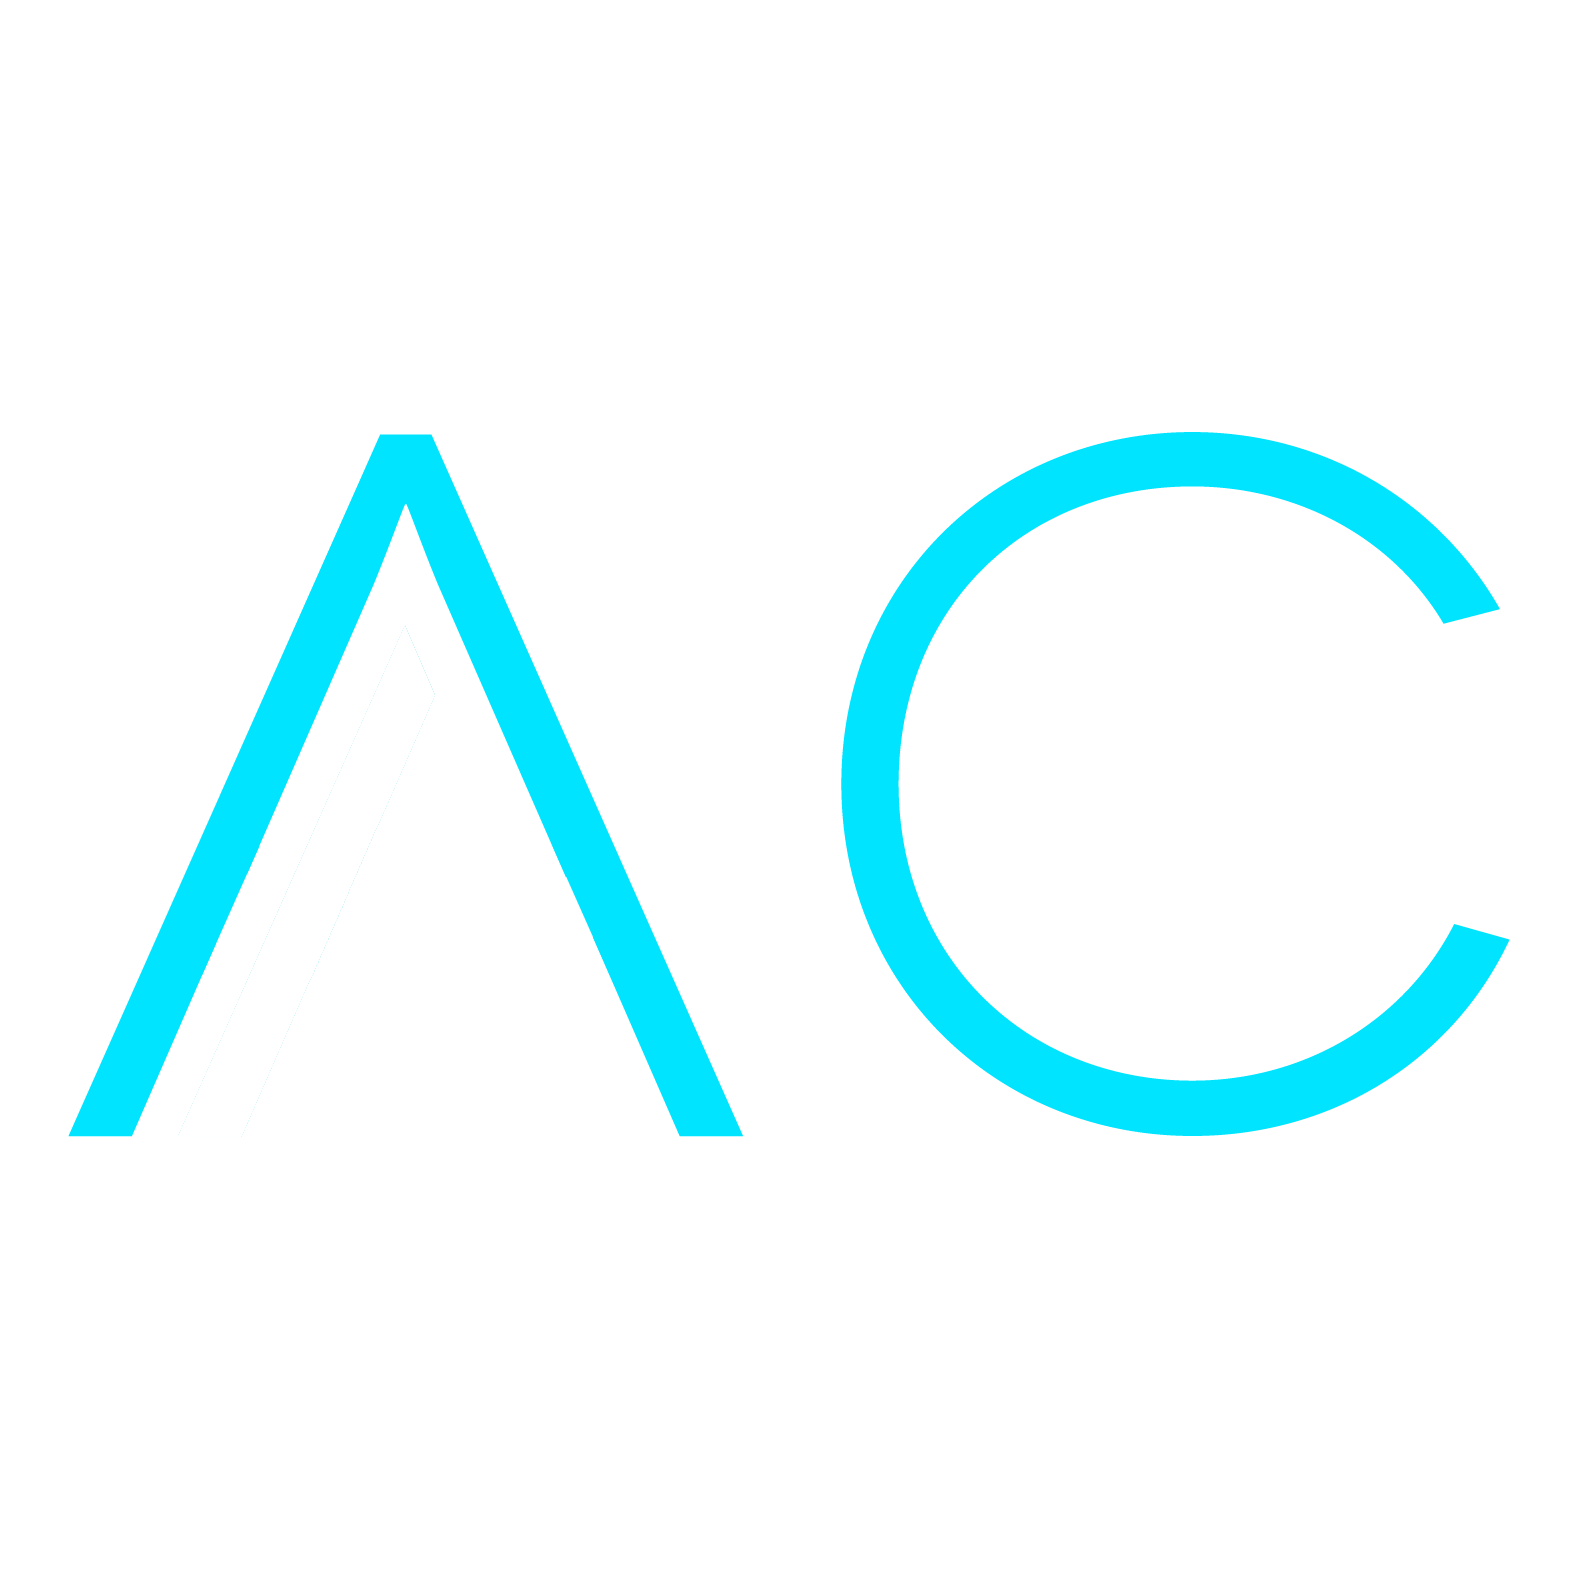 AC Logo No Text